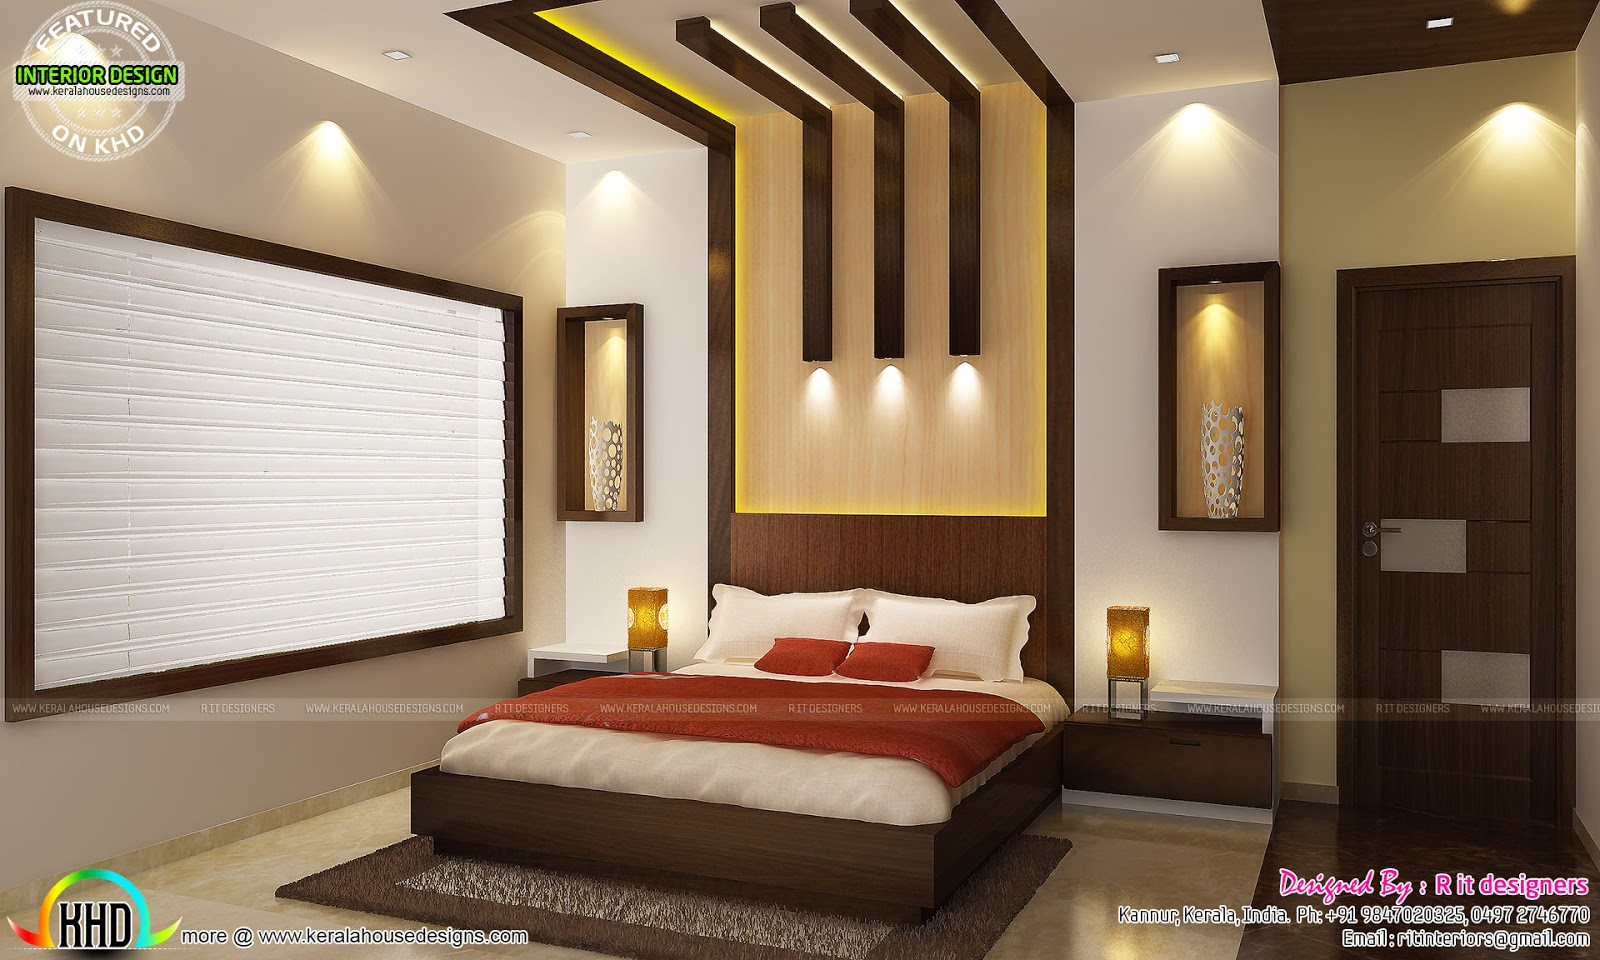 Kitchen living bedroom dining interior decor kerala for Bedroom designs india